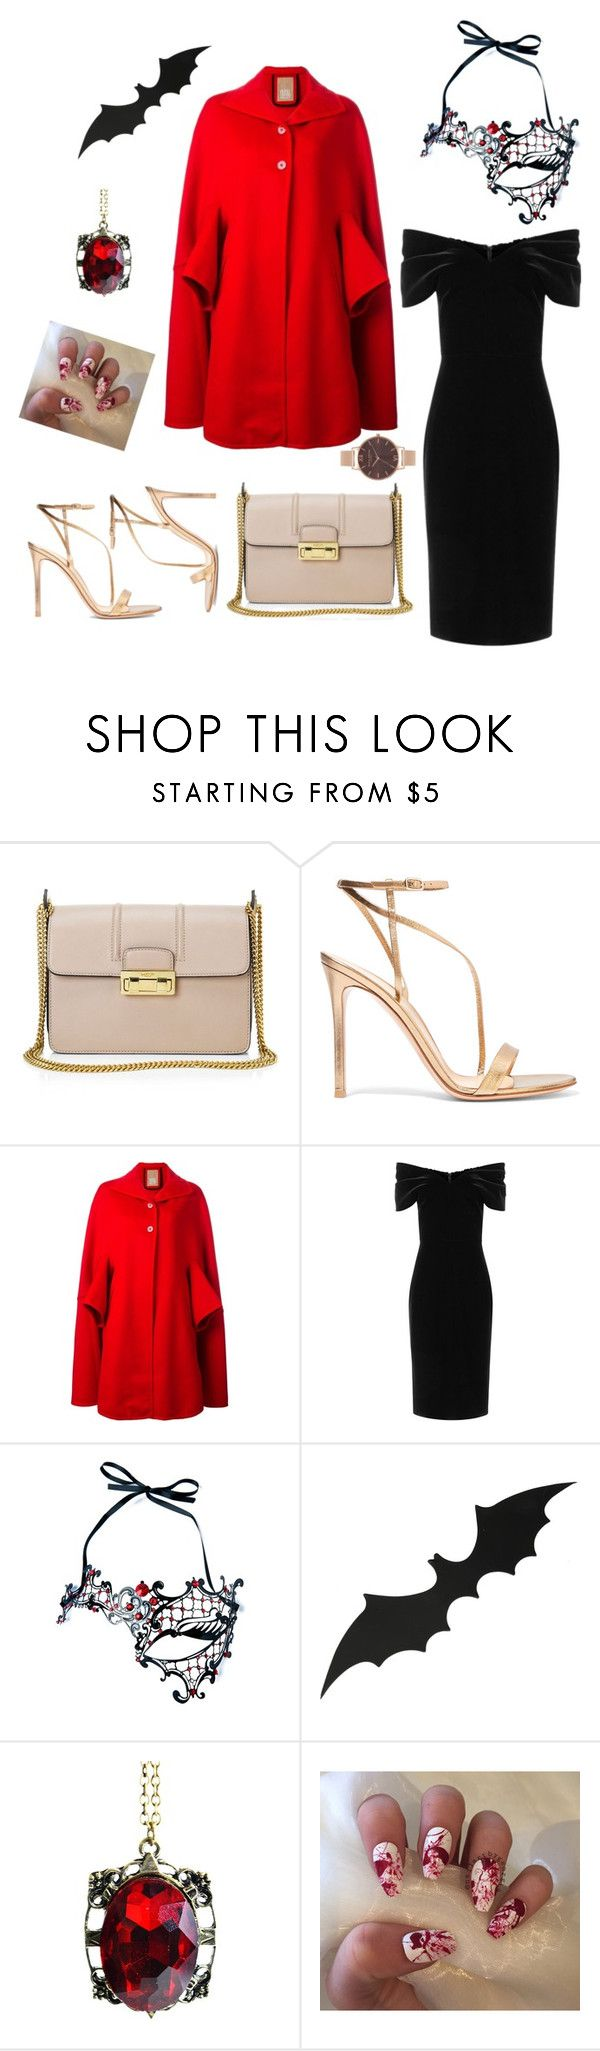 """Halloween Night"" by elomila ❤ liked on Polyvore featuring Lanvin, Gianvito Rossi, Pascal Millet, Emilio De La Morena, Kayso, Olivia Burton, Halloween, bat, mask and blackdress"